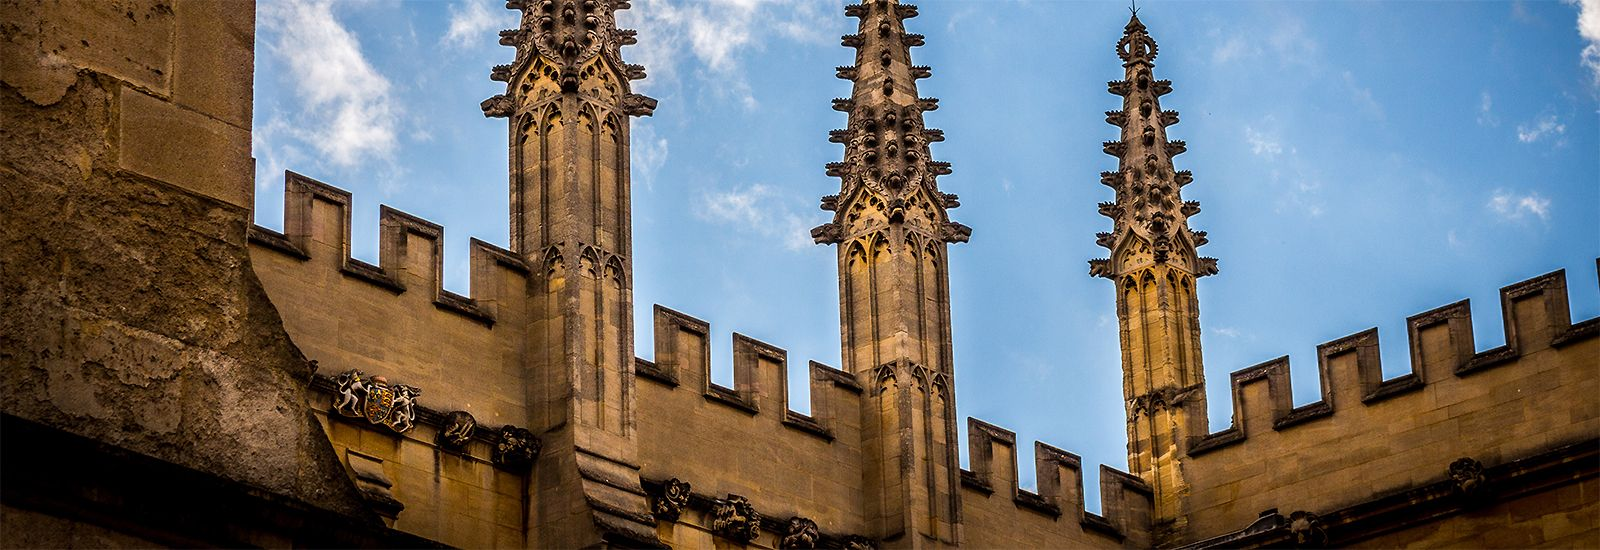 Spires and top of crenelated wall of the Bodleian